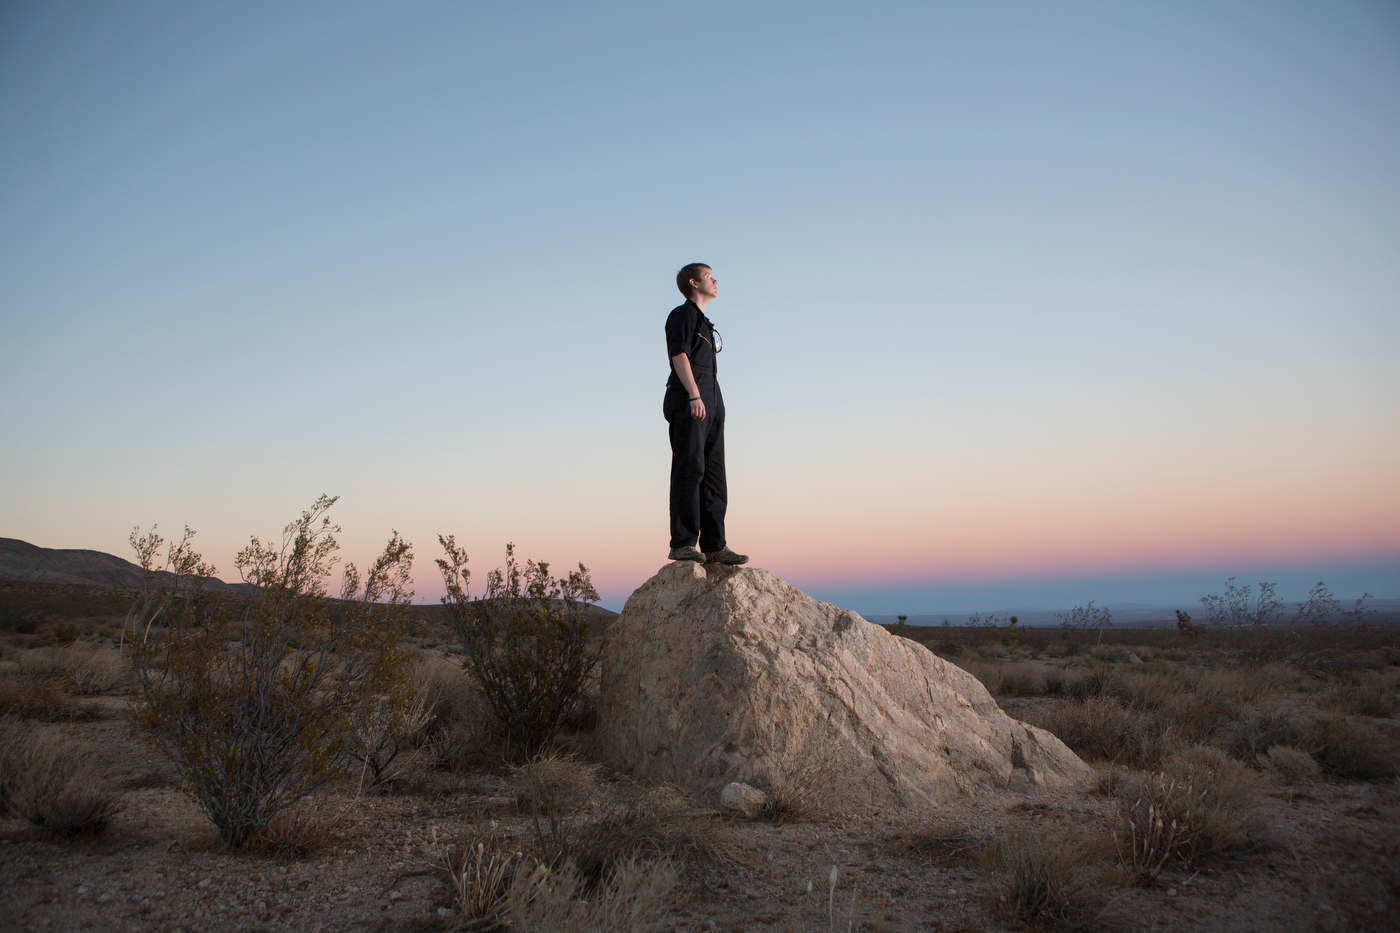 Sylvain Budot, engineer and Voyage to Mars candidate, in the Mojave Desert, for Le Nouvel Observateur.